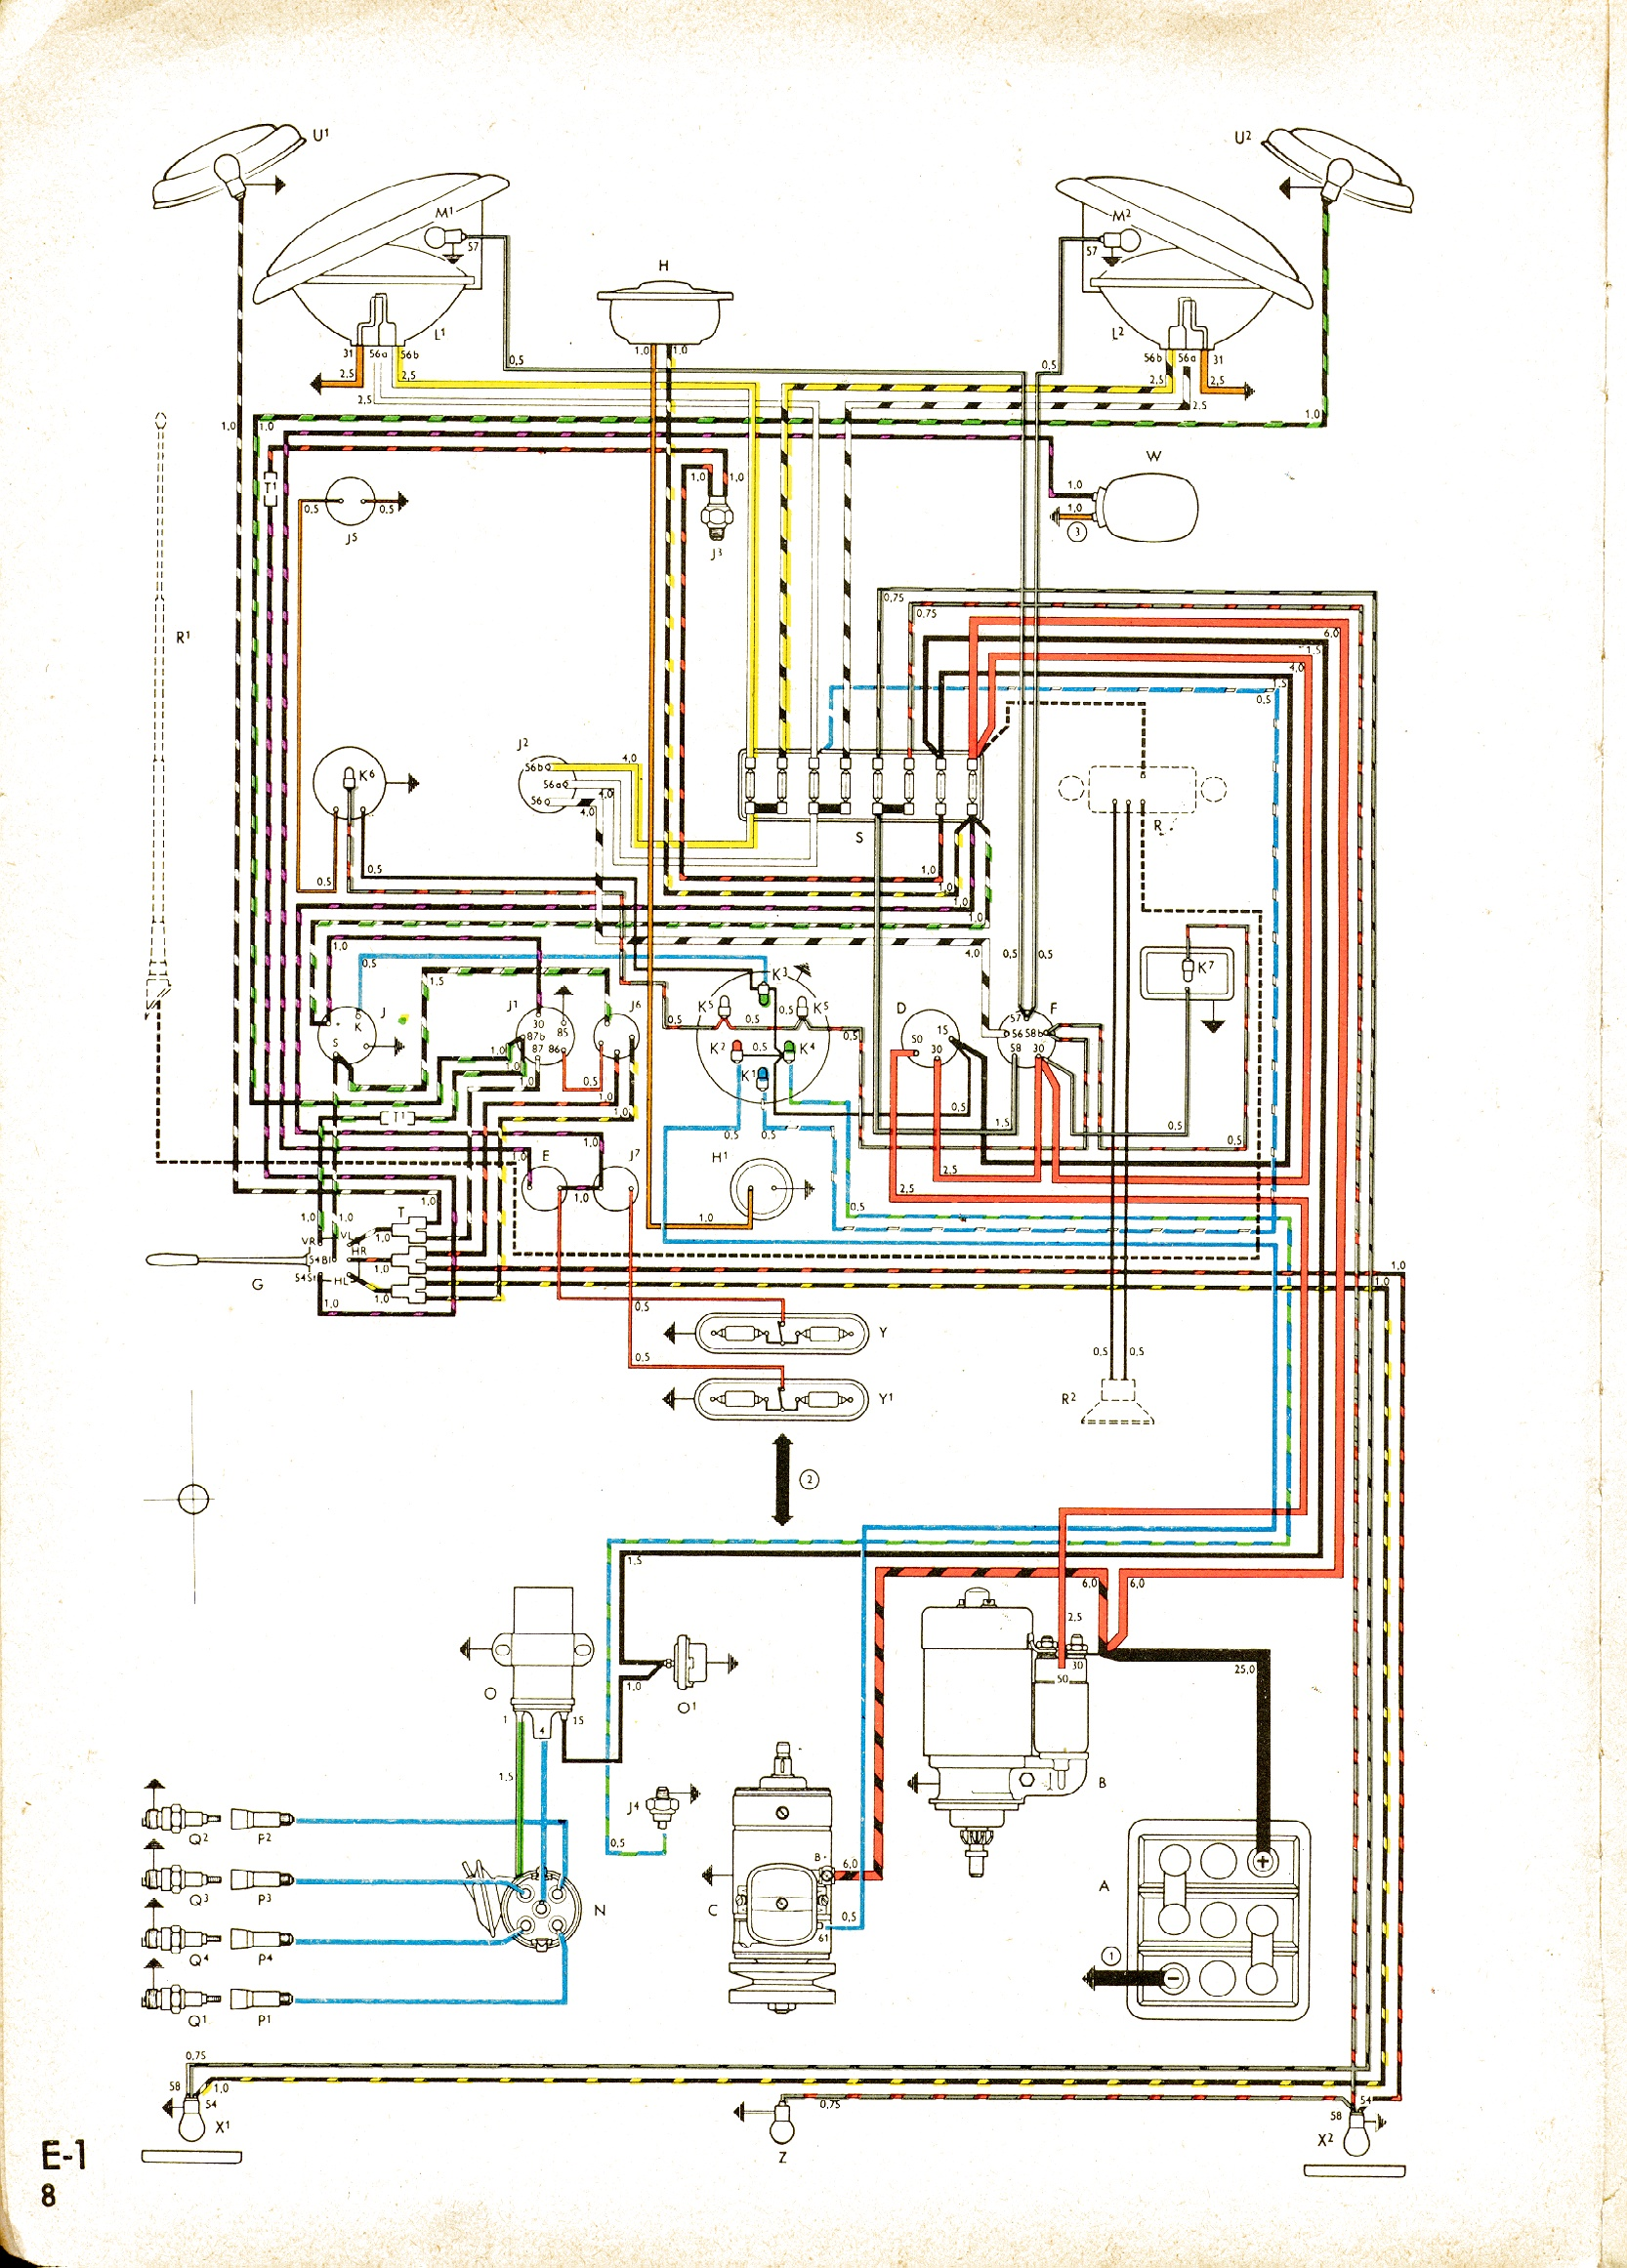 com - vw bus (and other) wiring diagrams